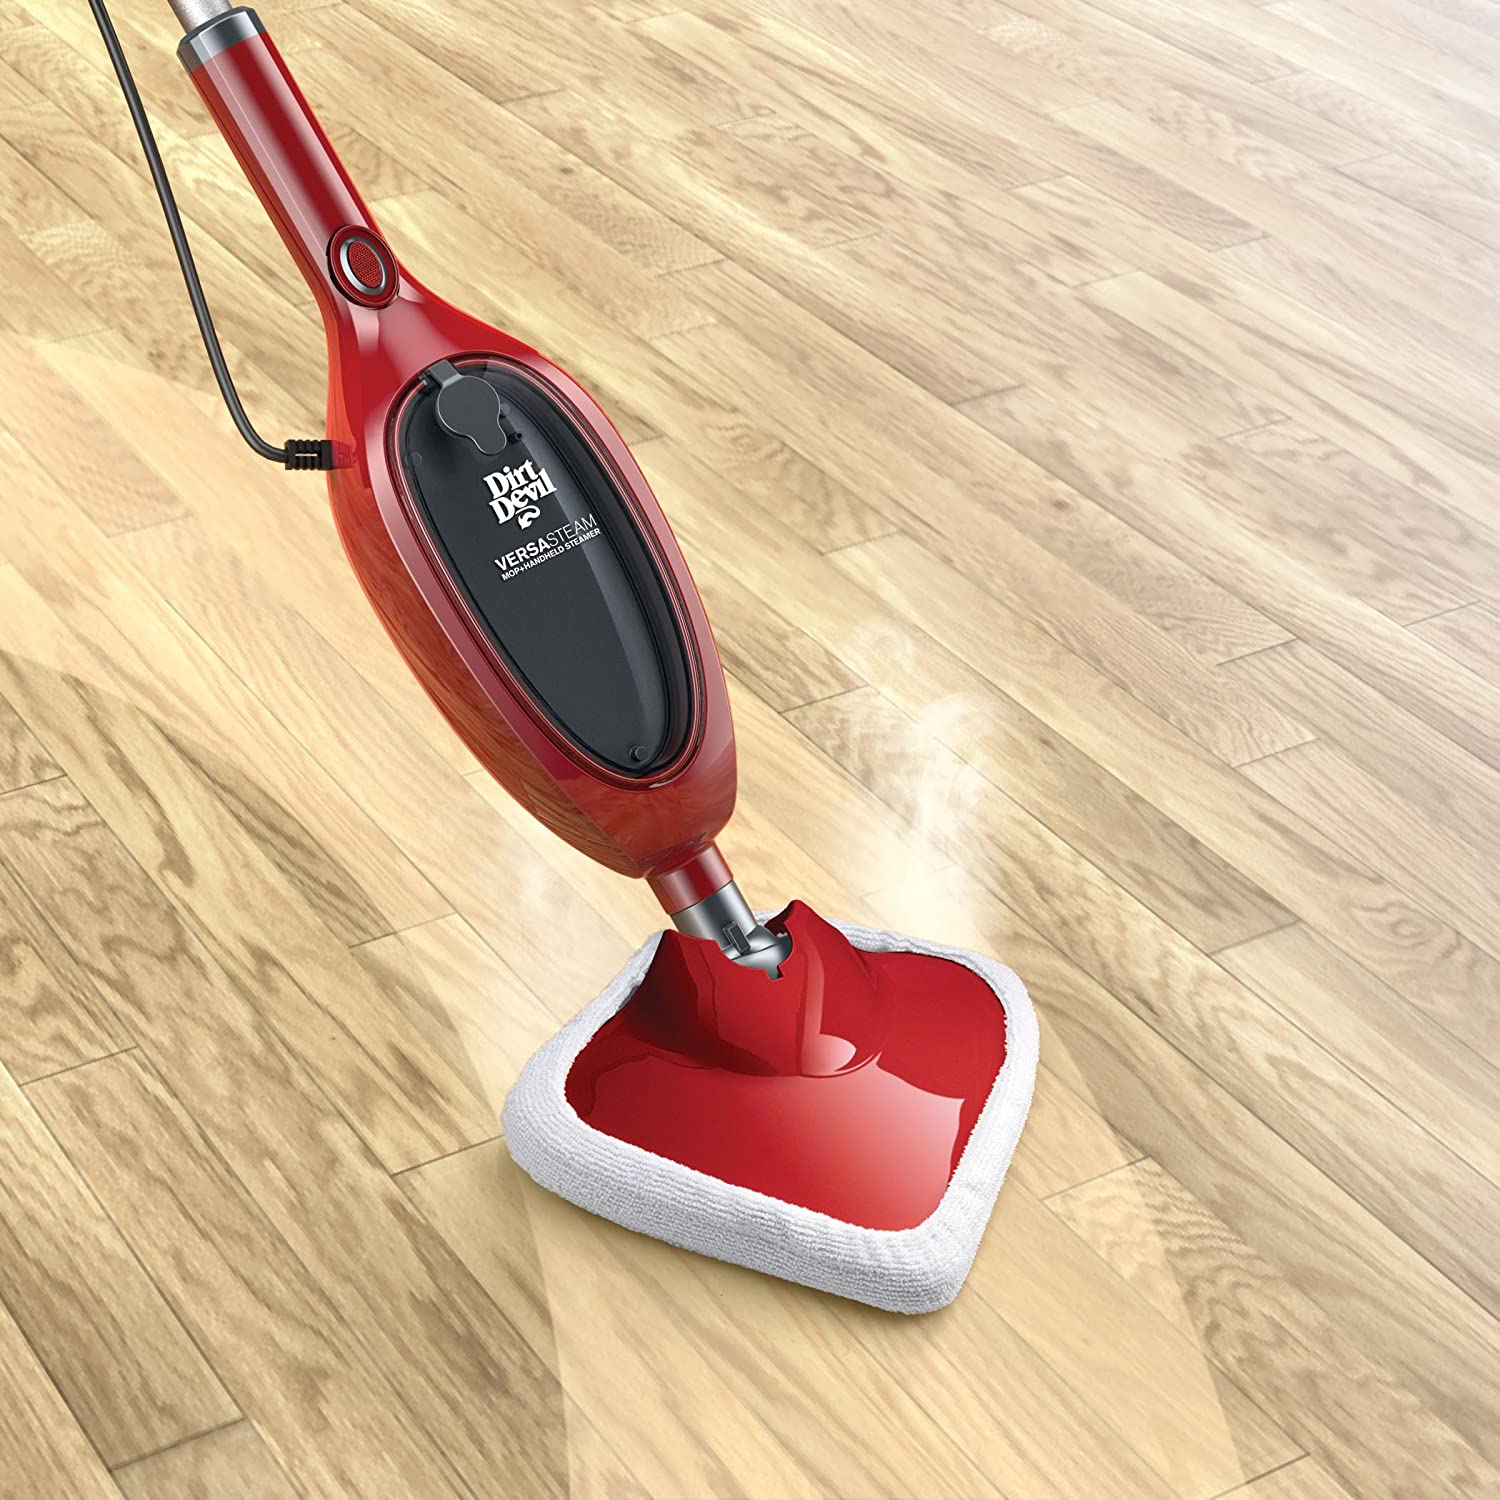 Amazoncom Dirt Devil PD20100 Steam Mop 2in1 Versa Steam Cleaner